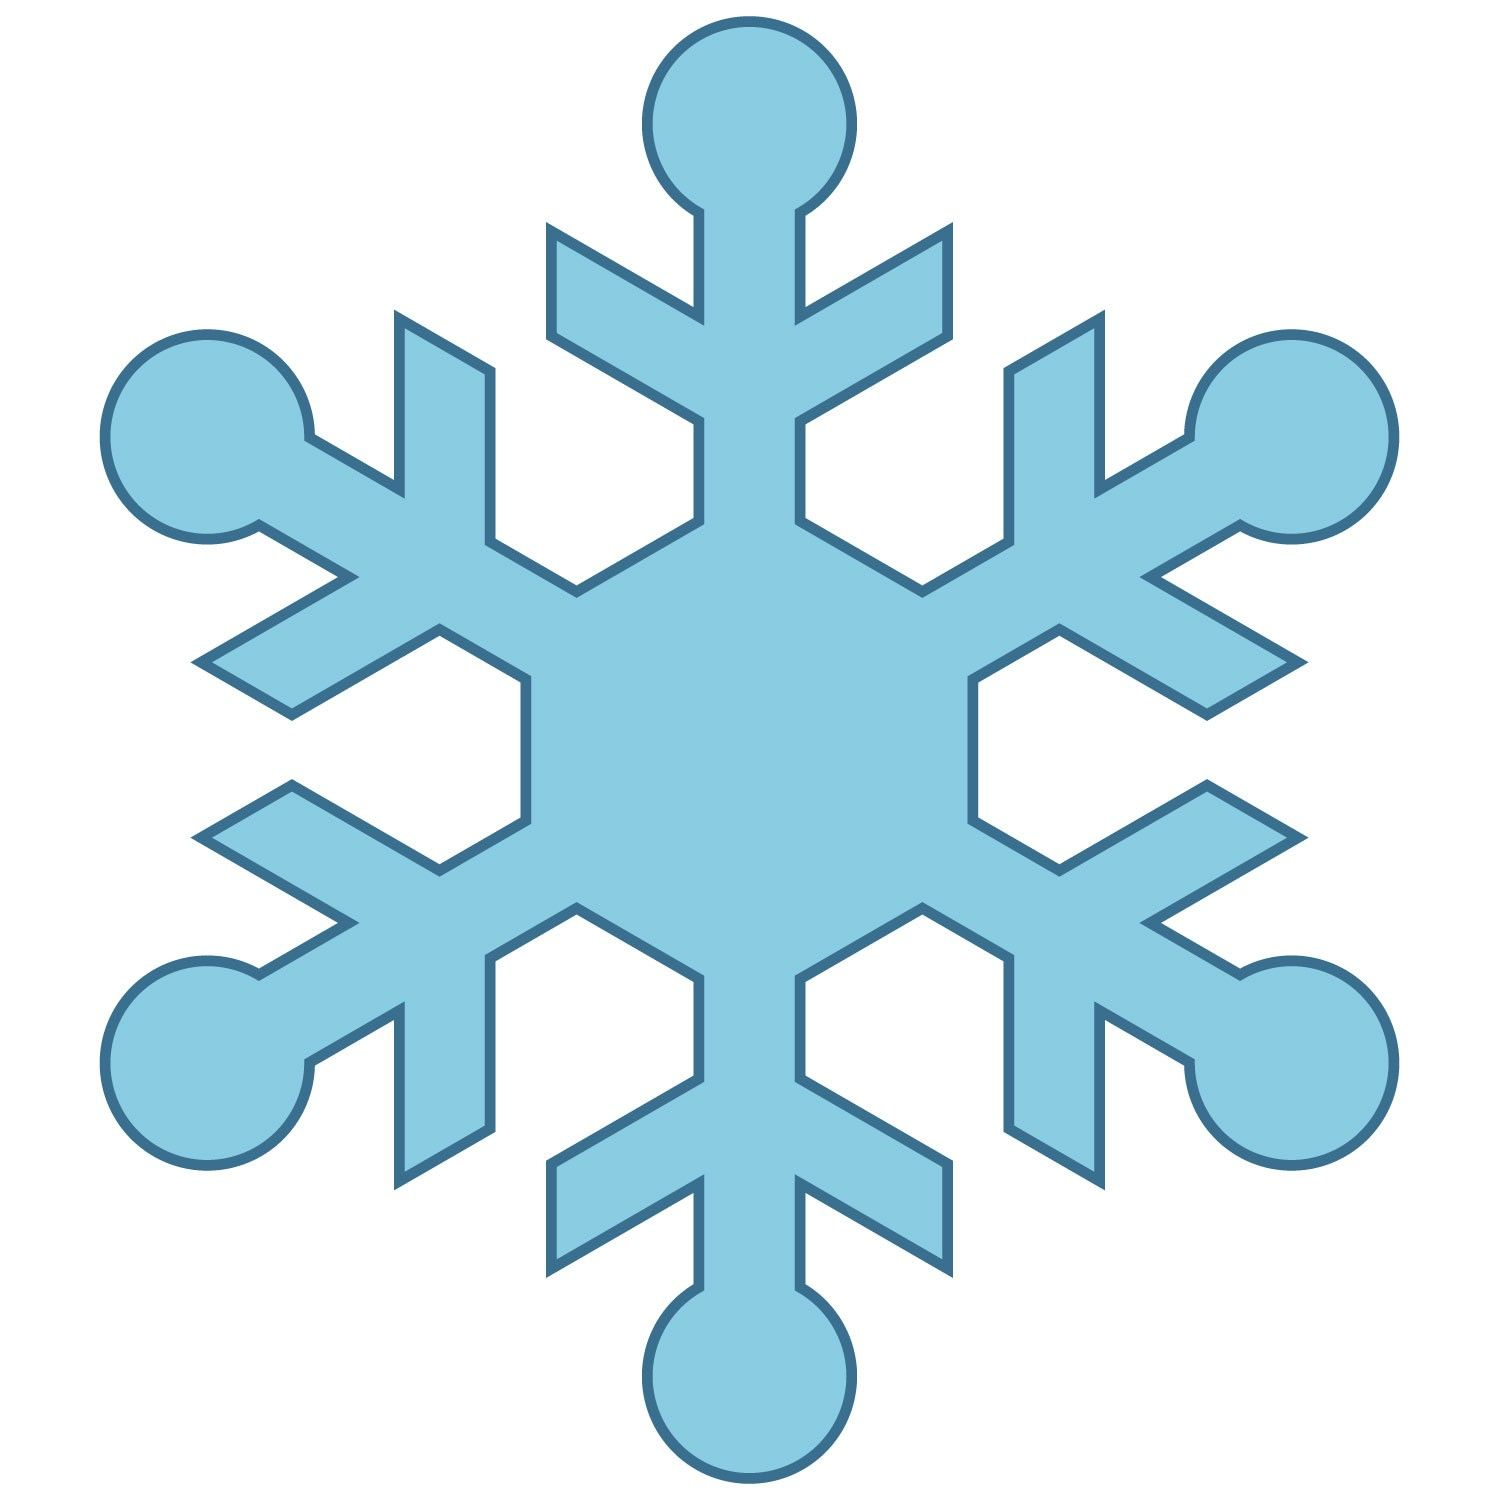 Snowglake clipart royalty free Simple Snowflakes Clipart Simple snowflakes clipart | Frozen ... royalty free